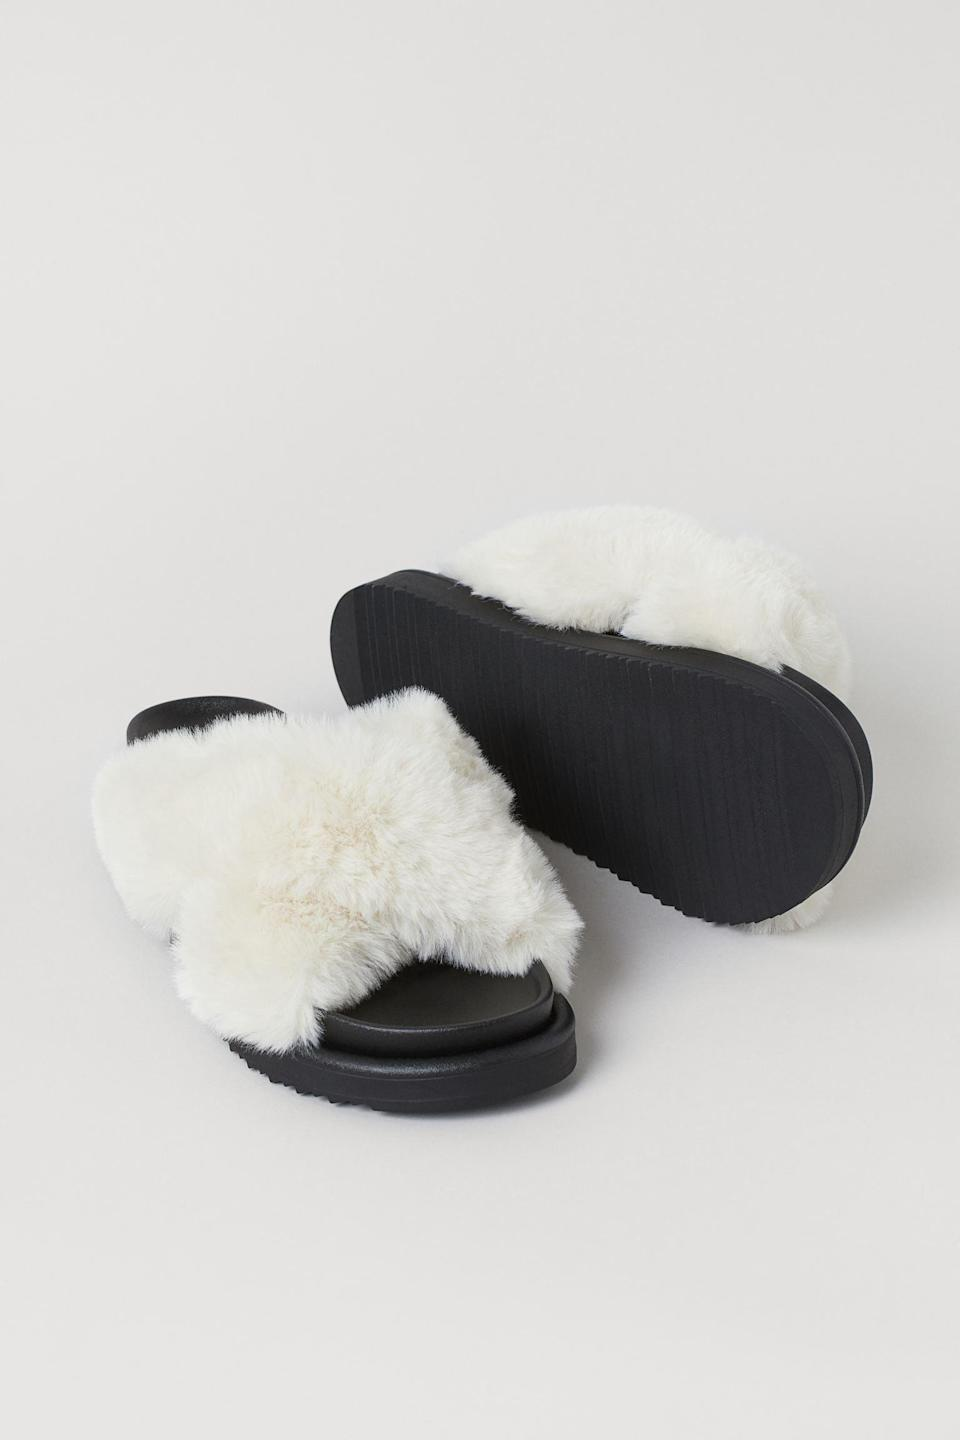 <p>If you need comfortable slippers with arch support, you'll appreciate the thicker soles of these <span>Faux Fur Slippers</span> ($30).</p>